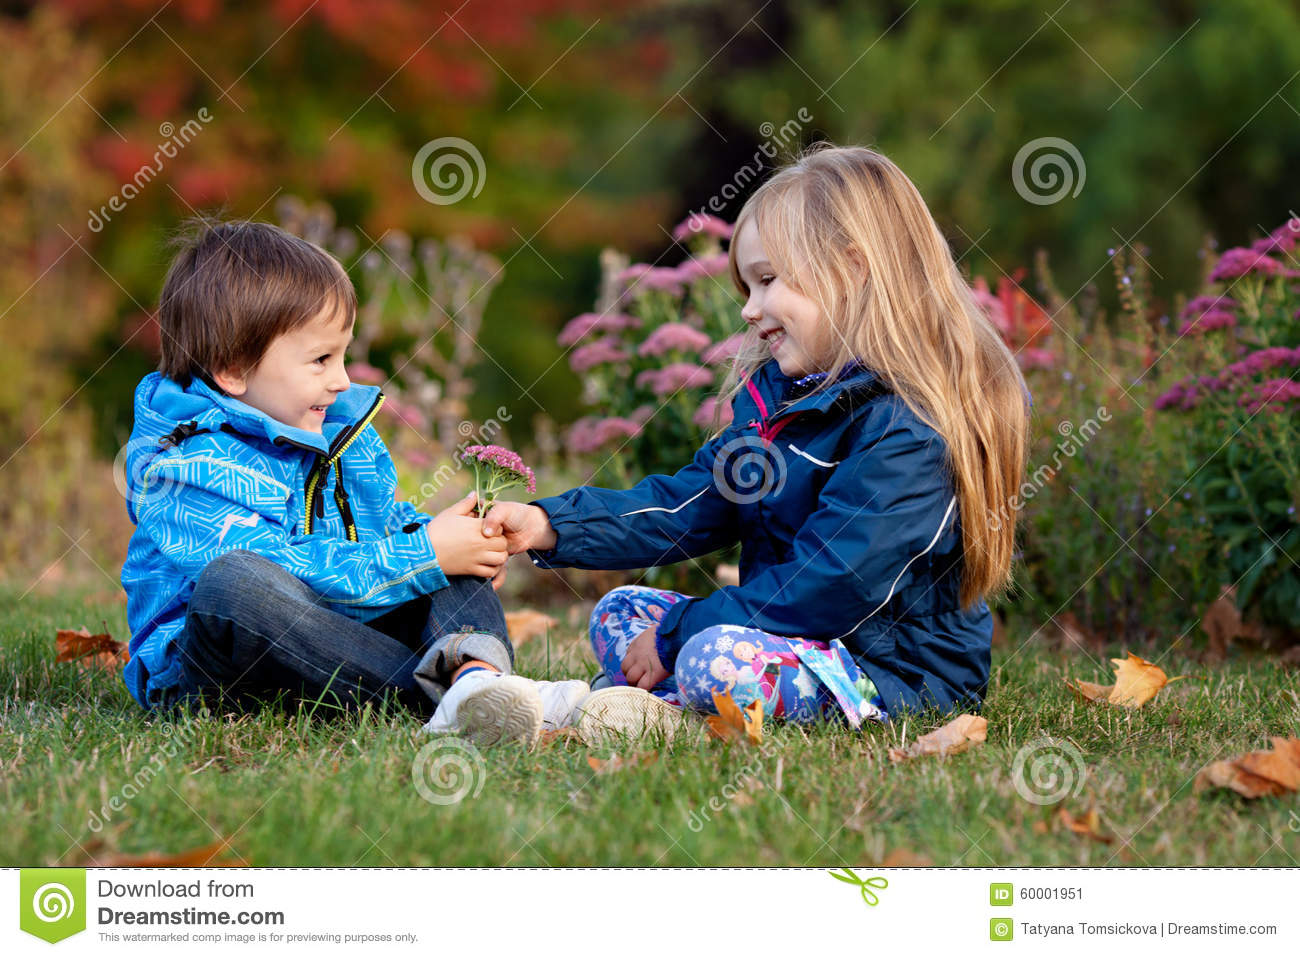 Beautiful Boy And Girl In A Park Boy Giving Flowers To The Girl